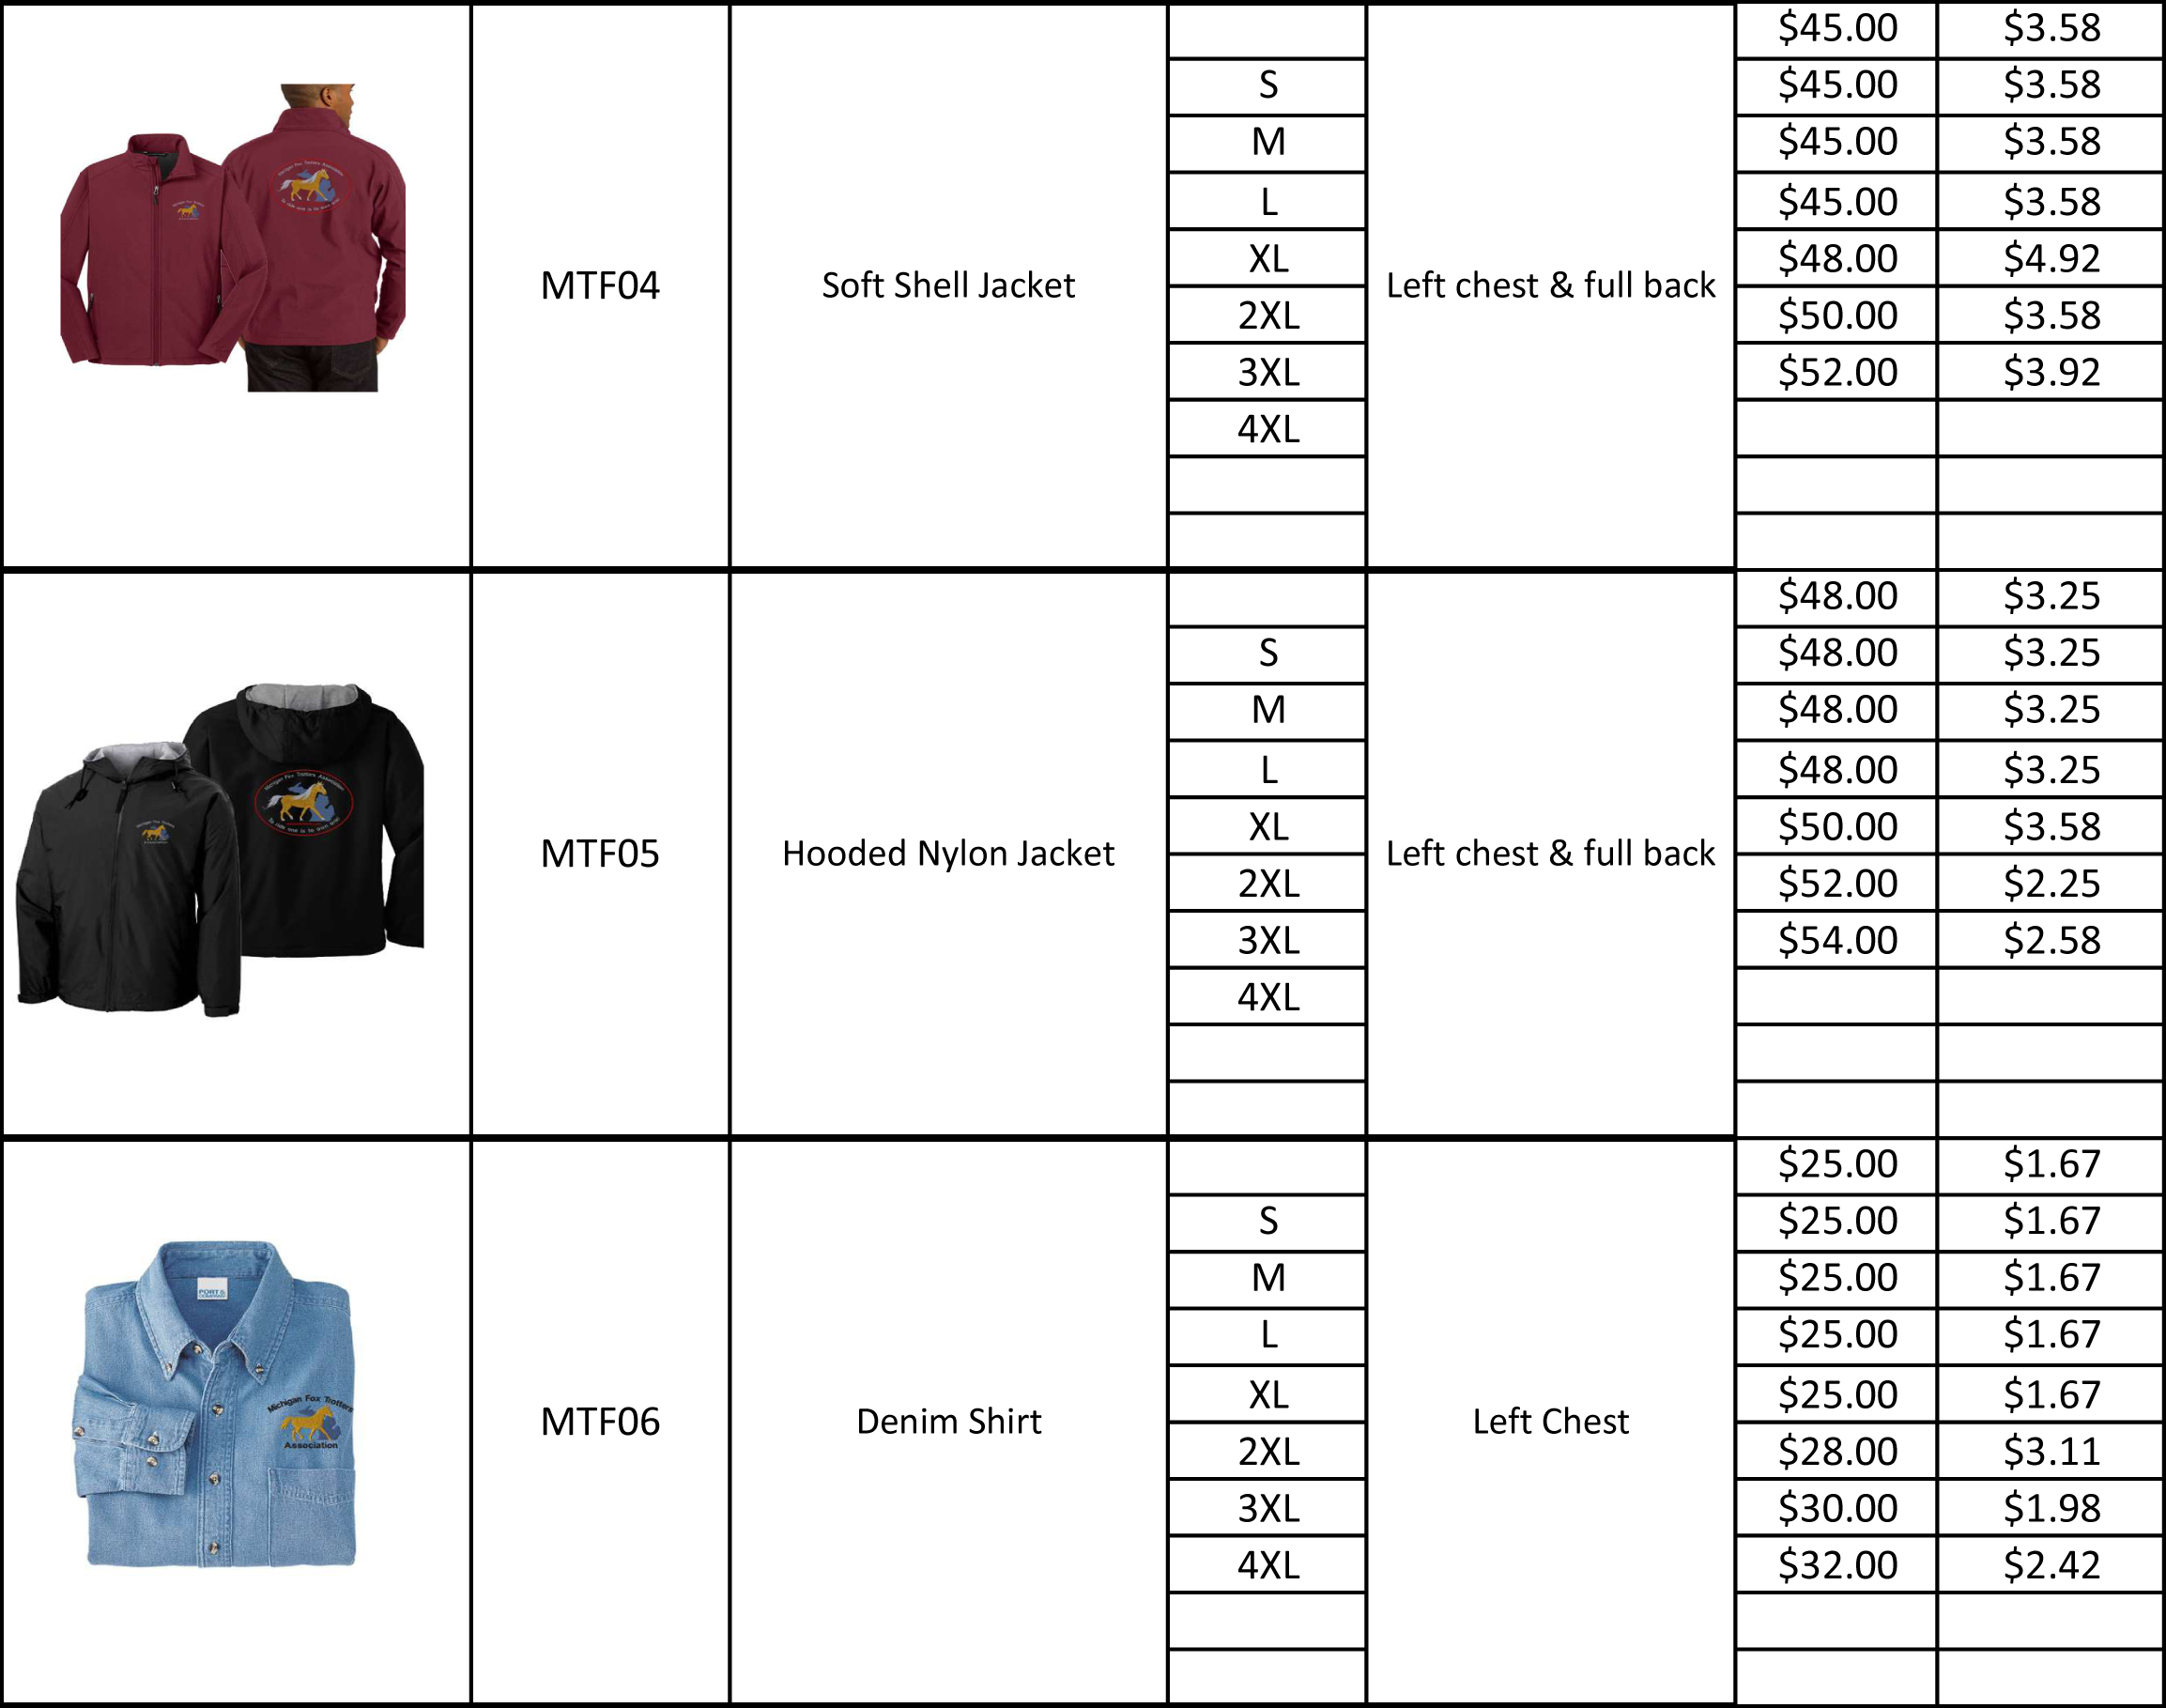 MFT Webstore Pricing and Profit-2 2.jpg